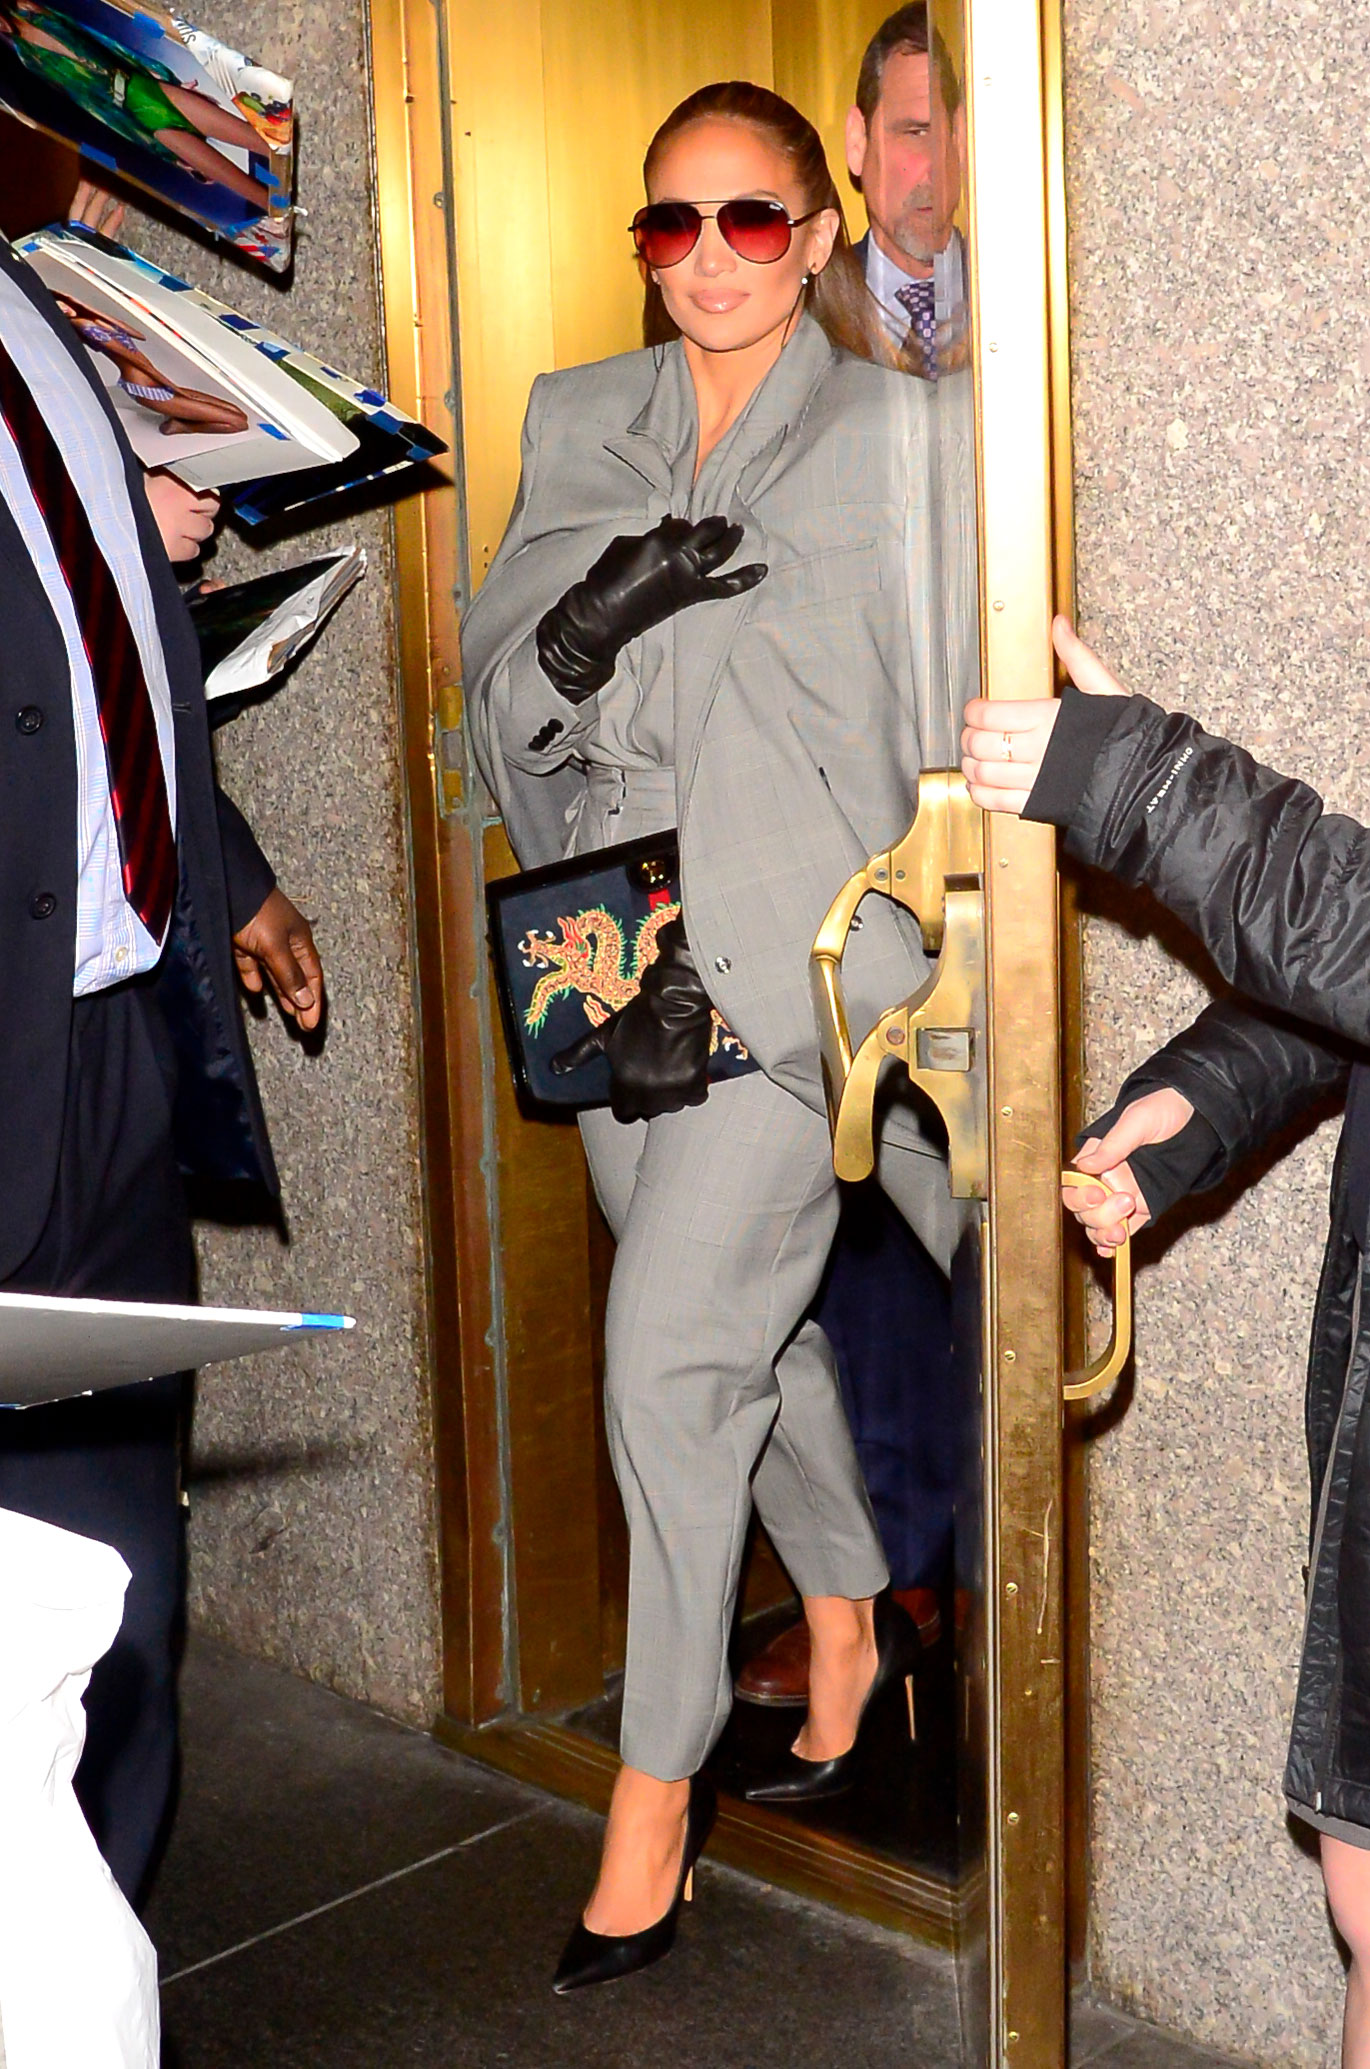 jennifer-lopez-Second-Act-press-gray-suit - A true boss lady, Lopez was seen outside the NBC studios on Tuesday, December 11, in Max Mara suiting that she accessorized with a Gucci clutch and Quay frames.